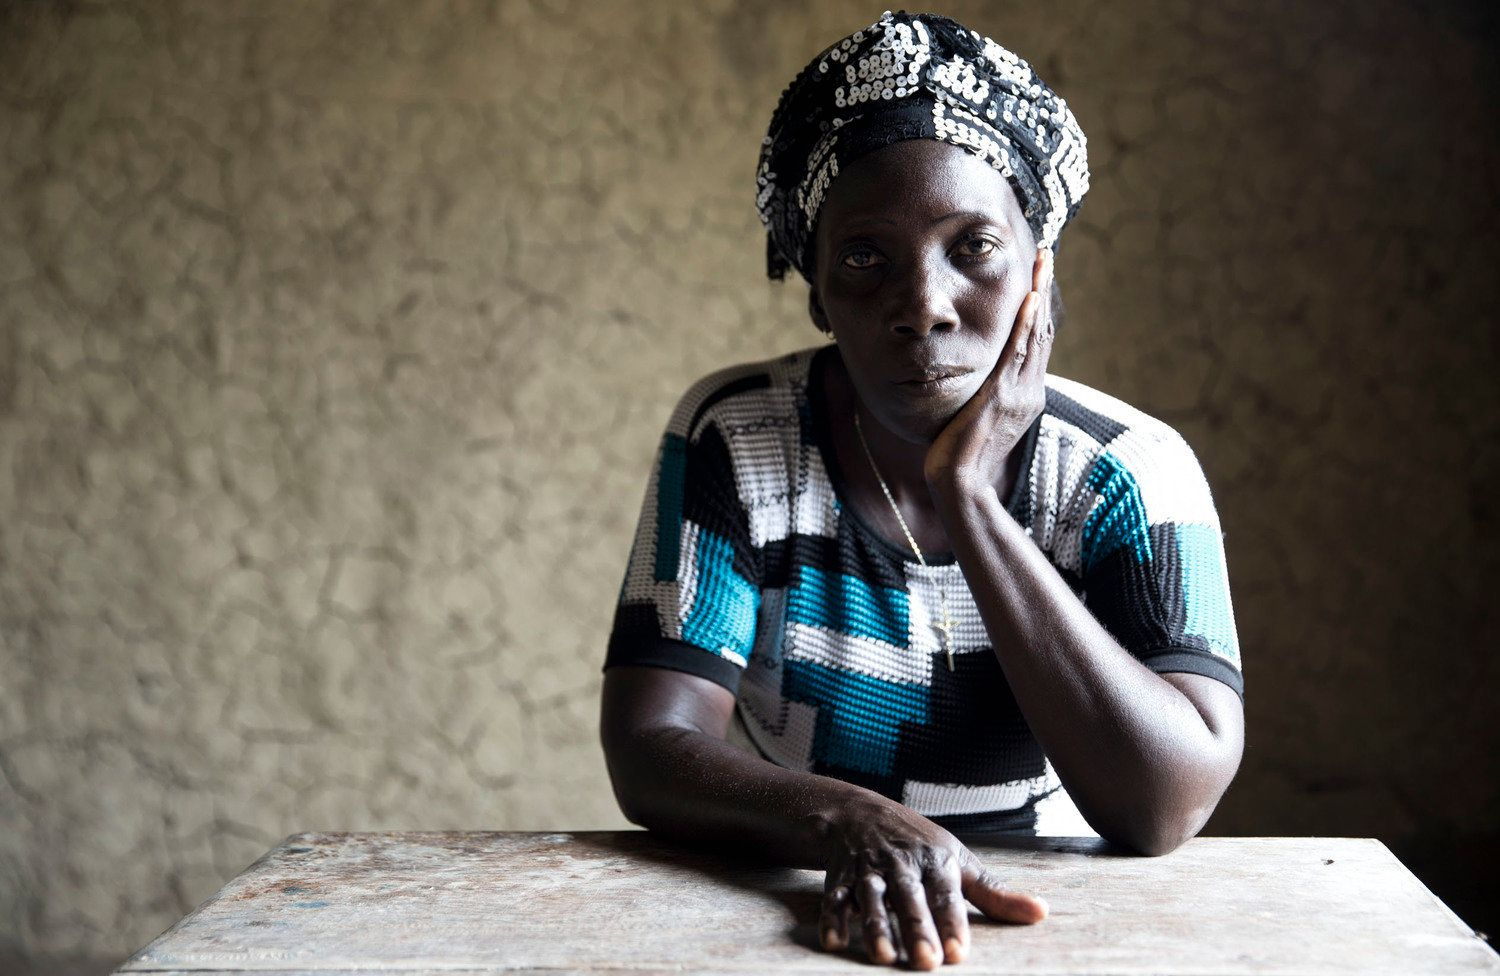 Photographer Daniel Jack Lyons traveled to West Africa in 2015 to document what life was like as an Ebola survivor. Hawa Sing